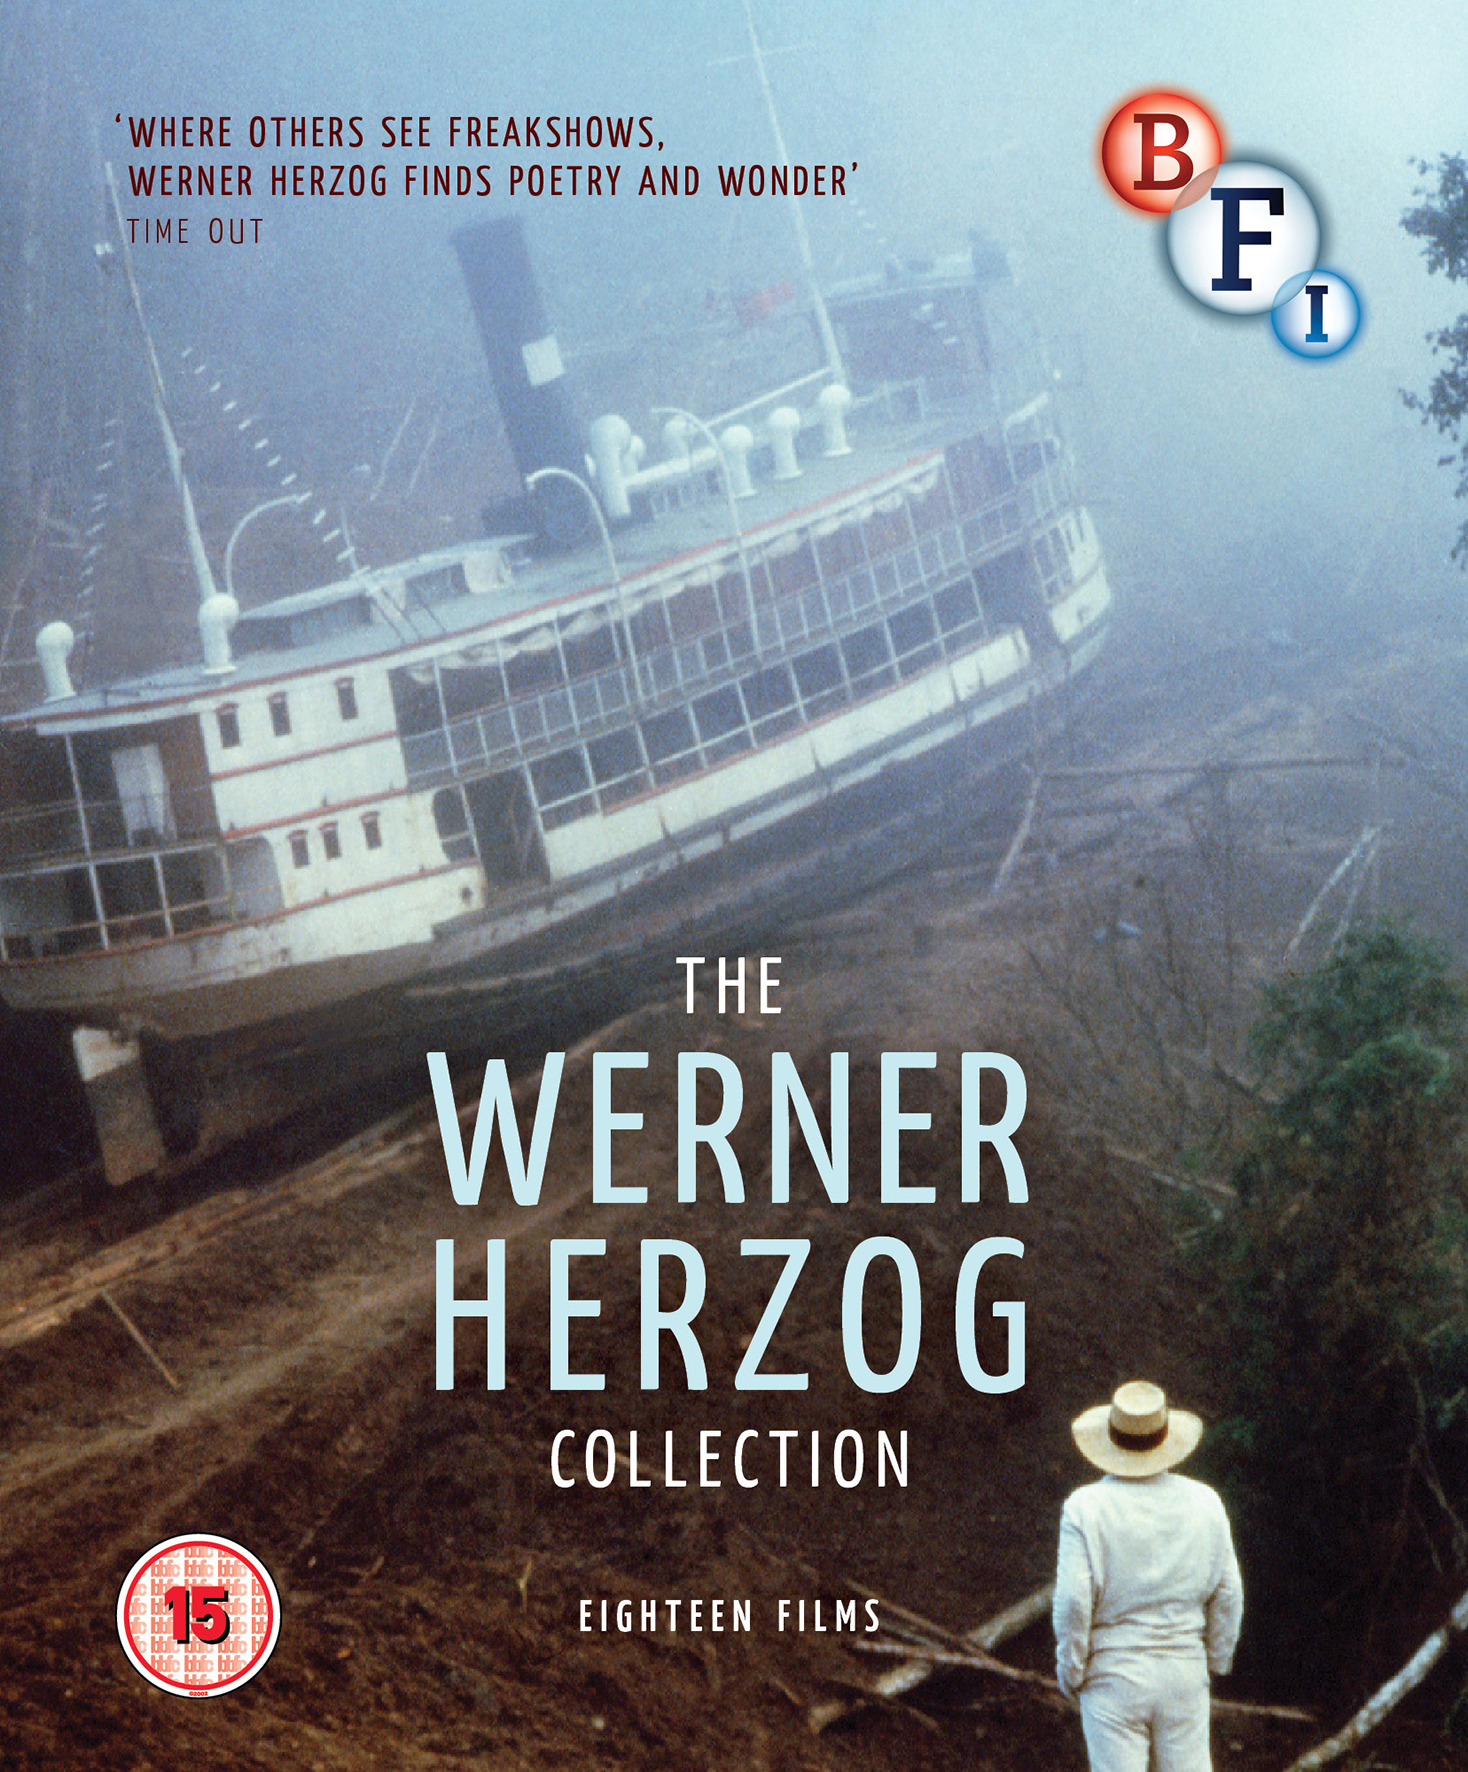 Buy The Werner Herzog Collection Blu-ray on DVD and Blu Ray